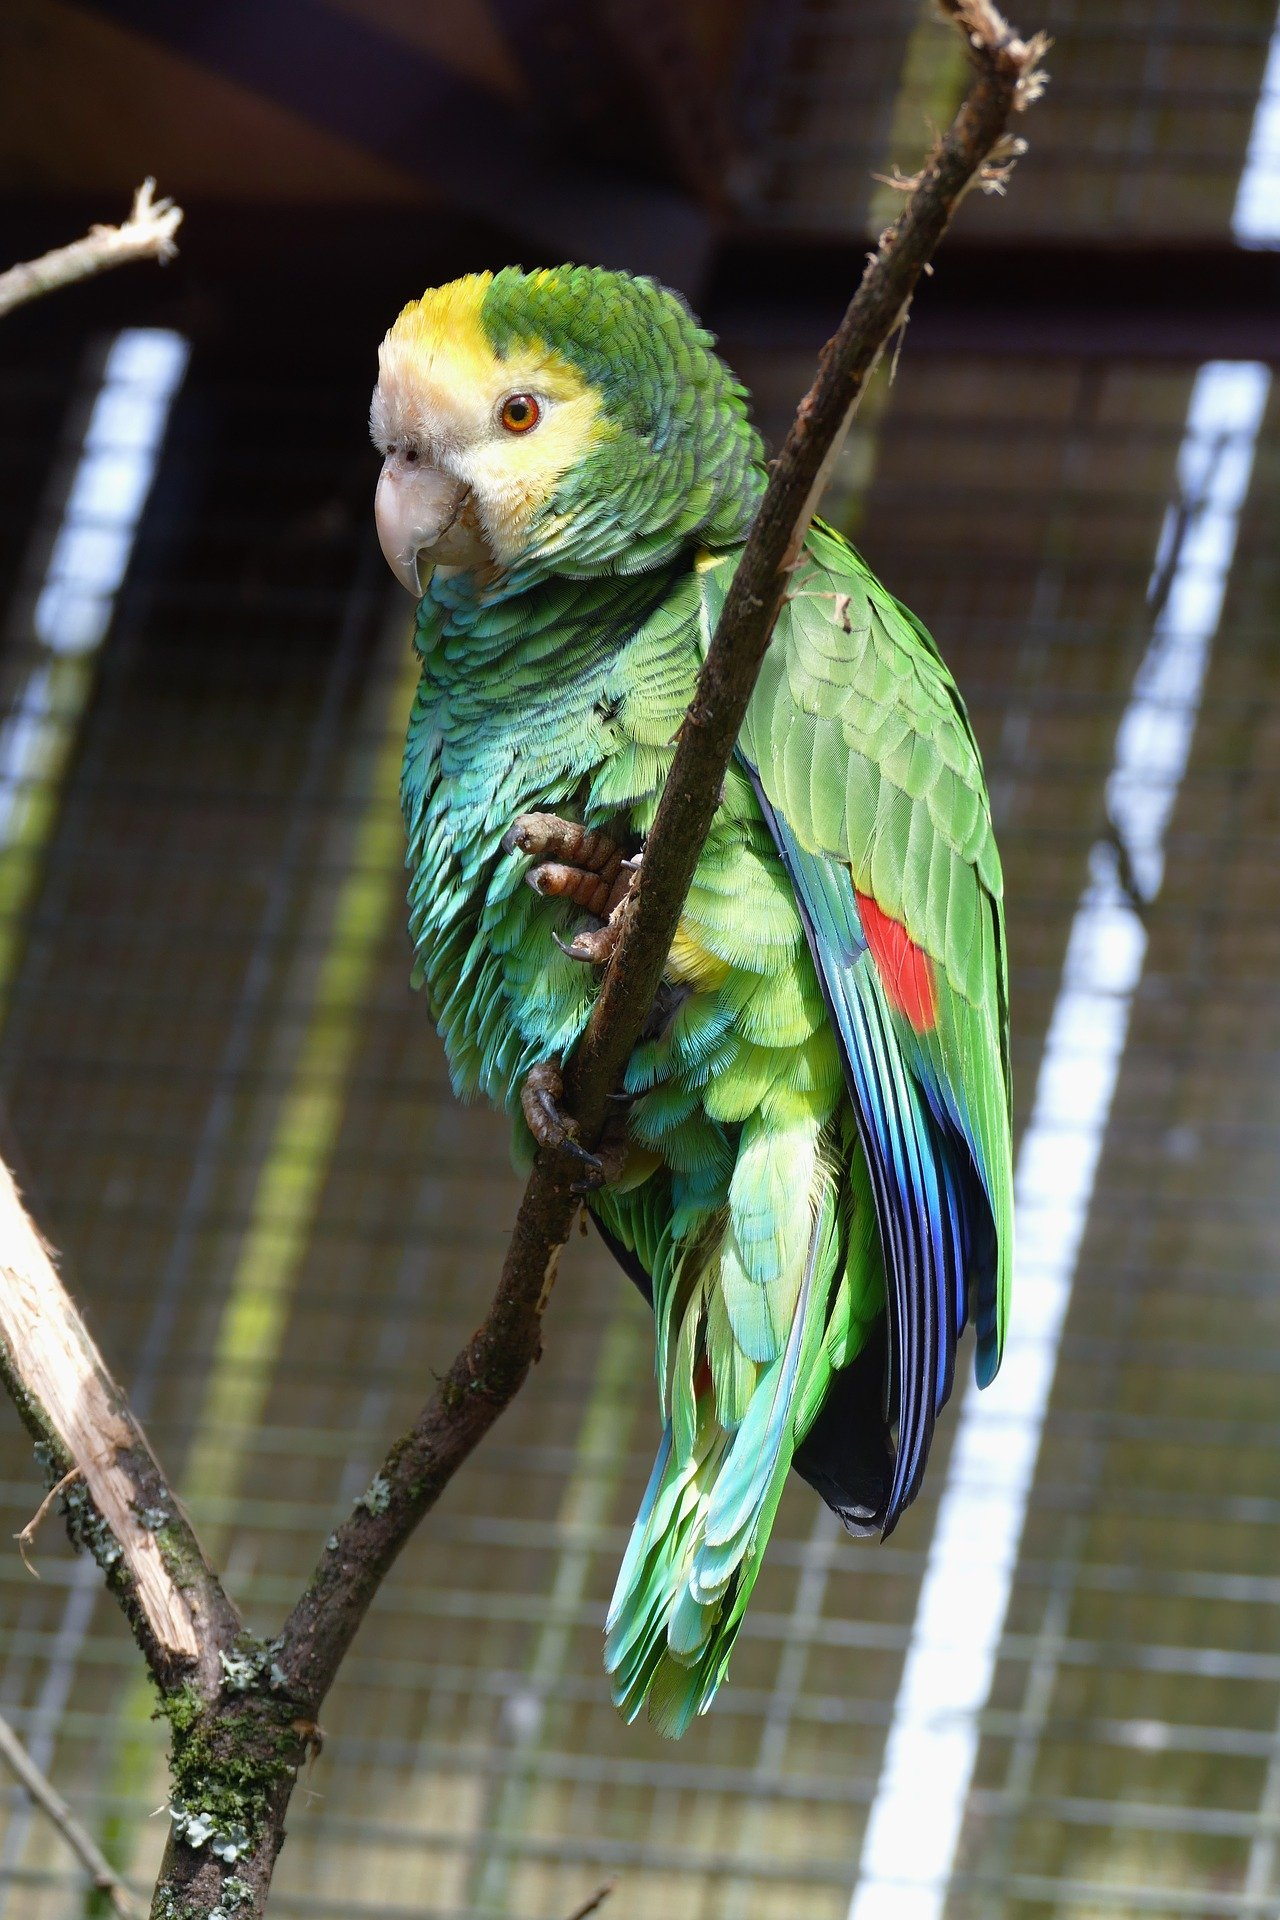 A beautiful parrot in a cage.   Photo: Pixabay/InspiredImages